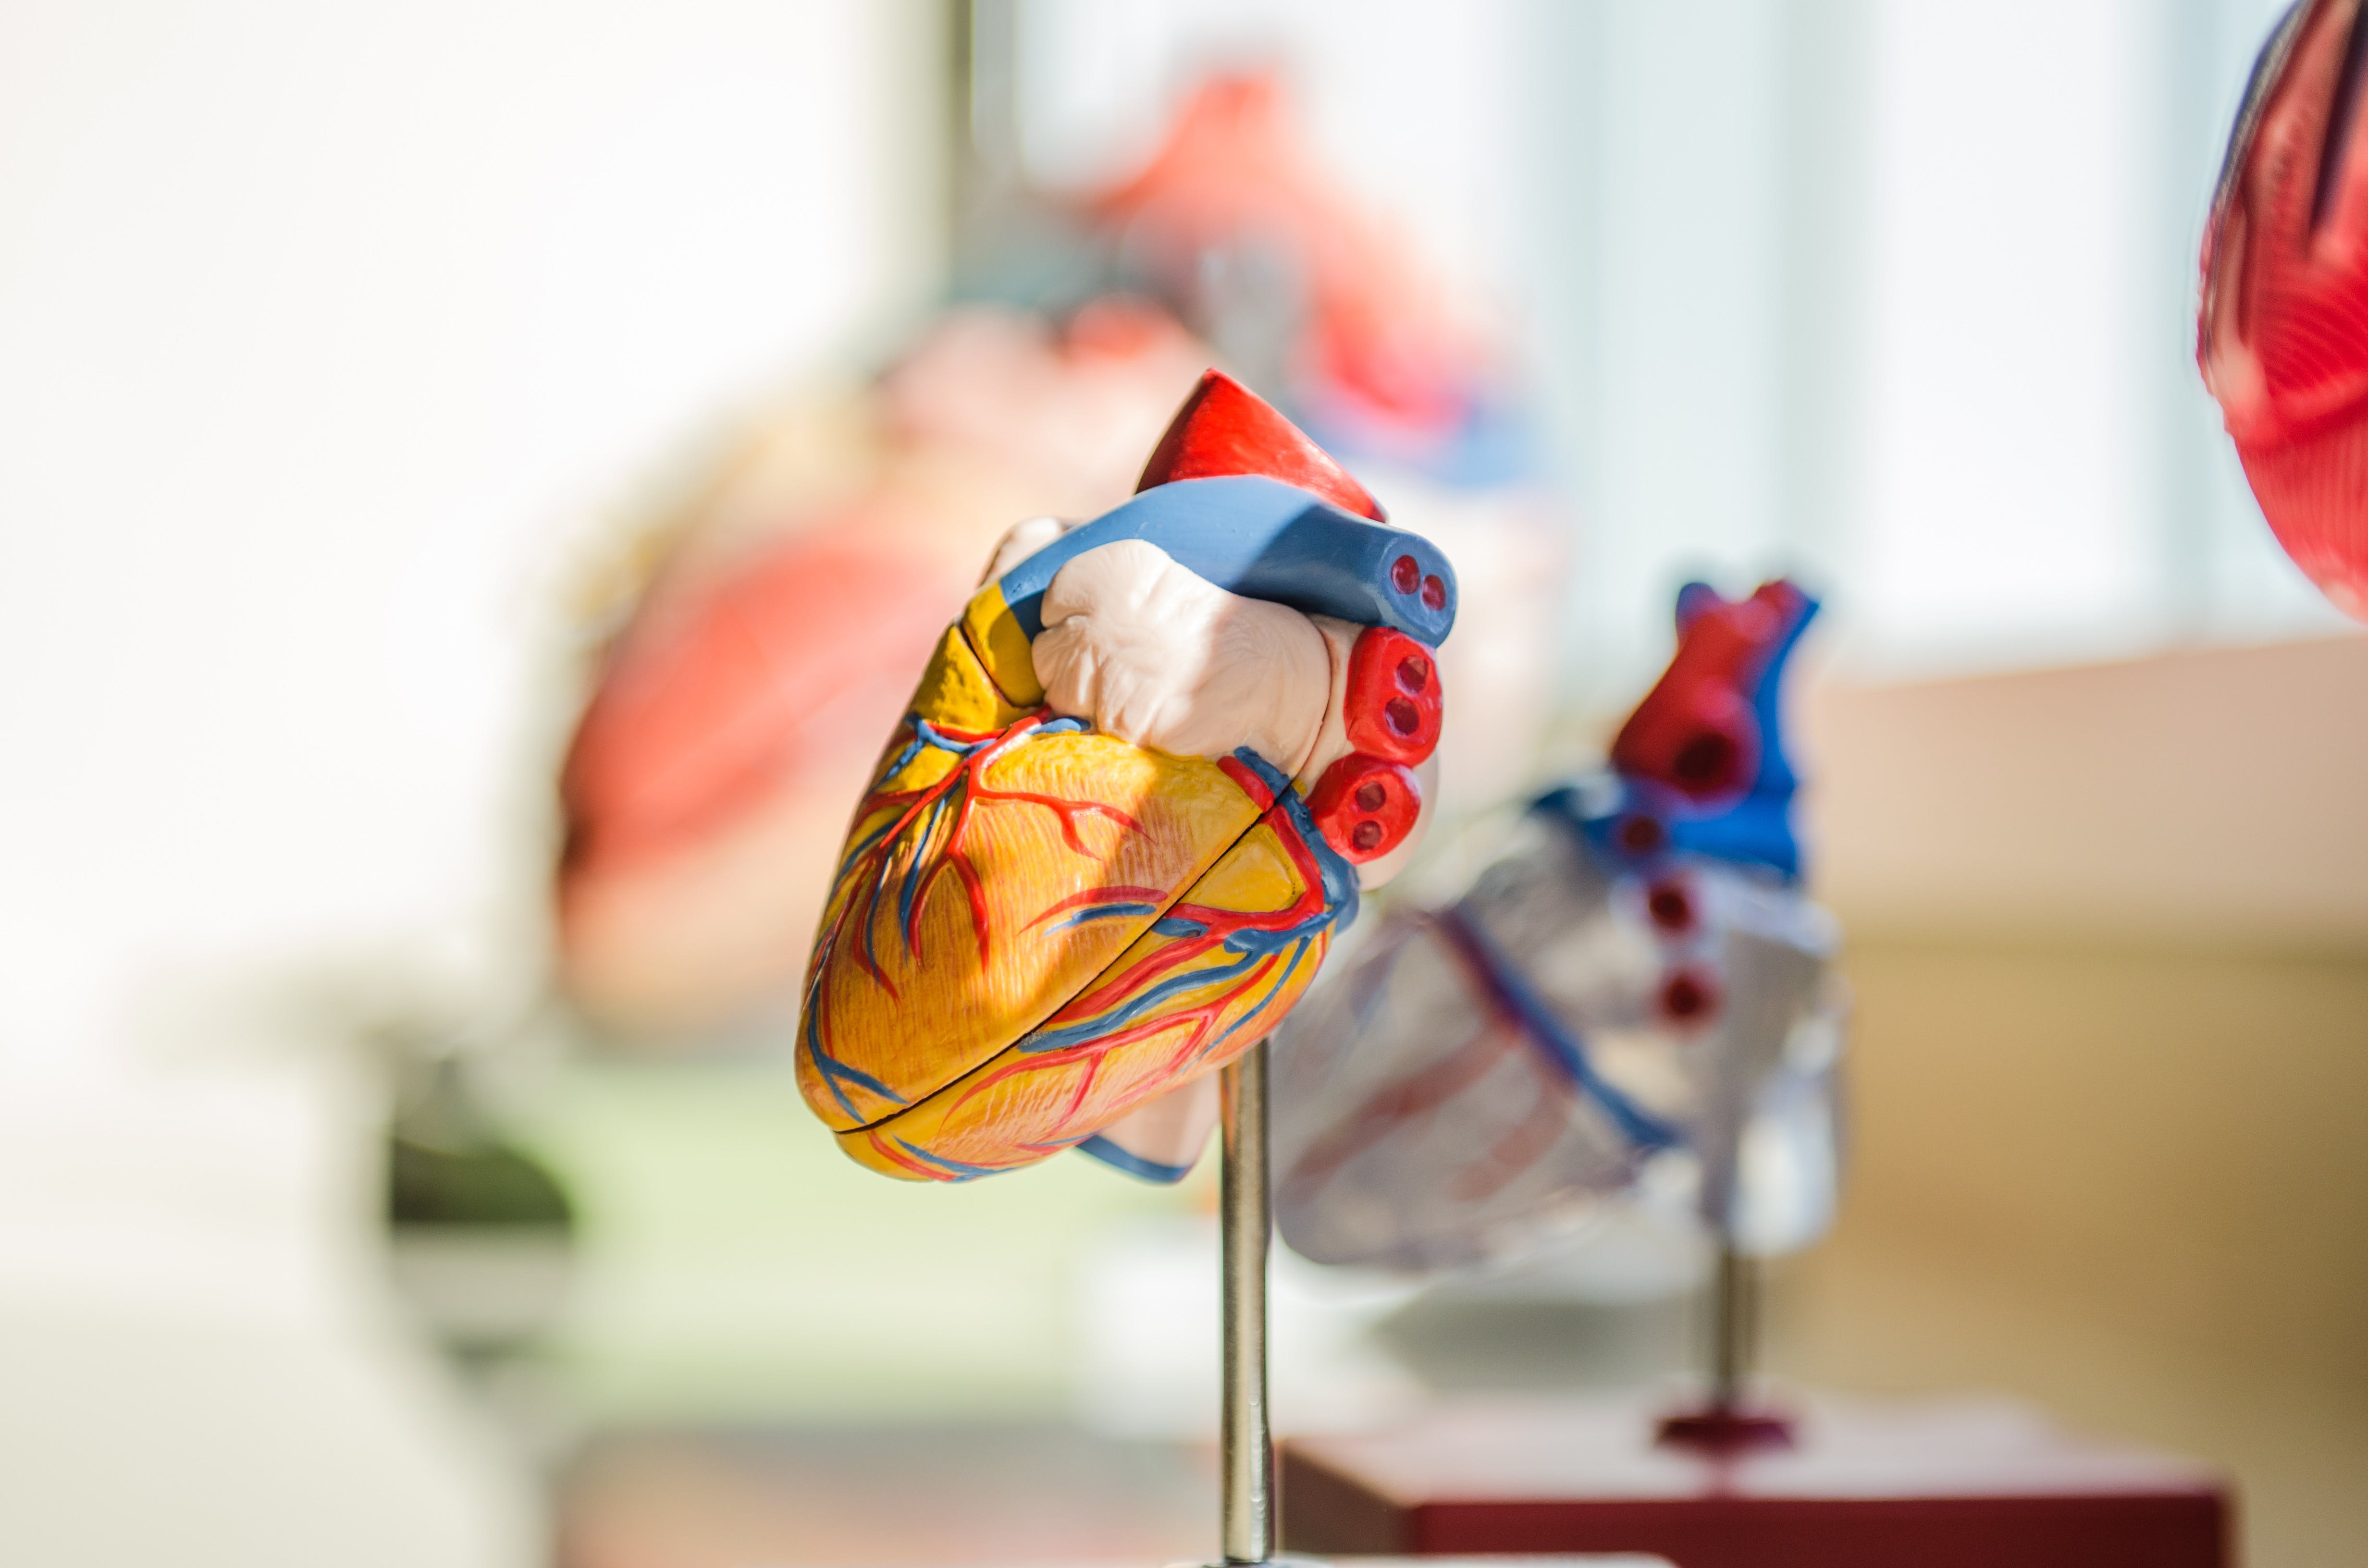 heart organ model anatomy